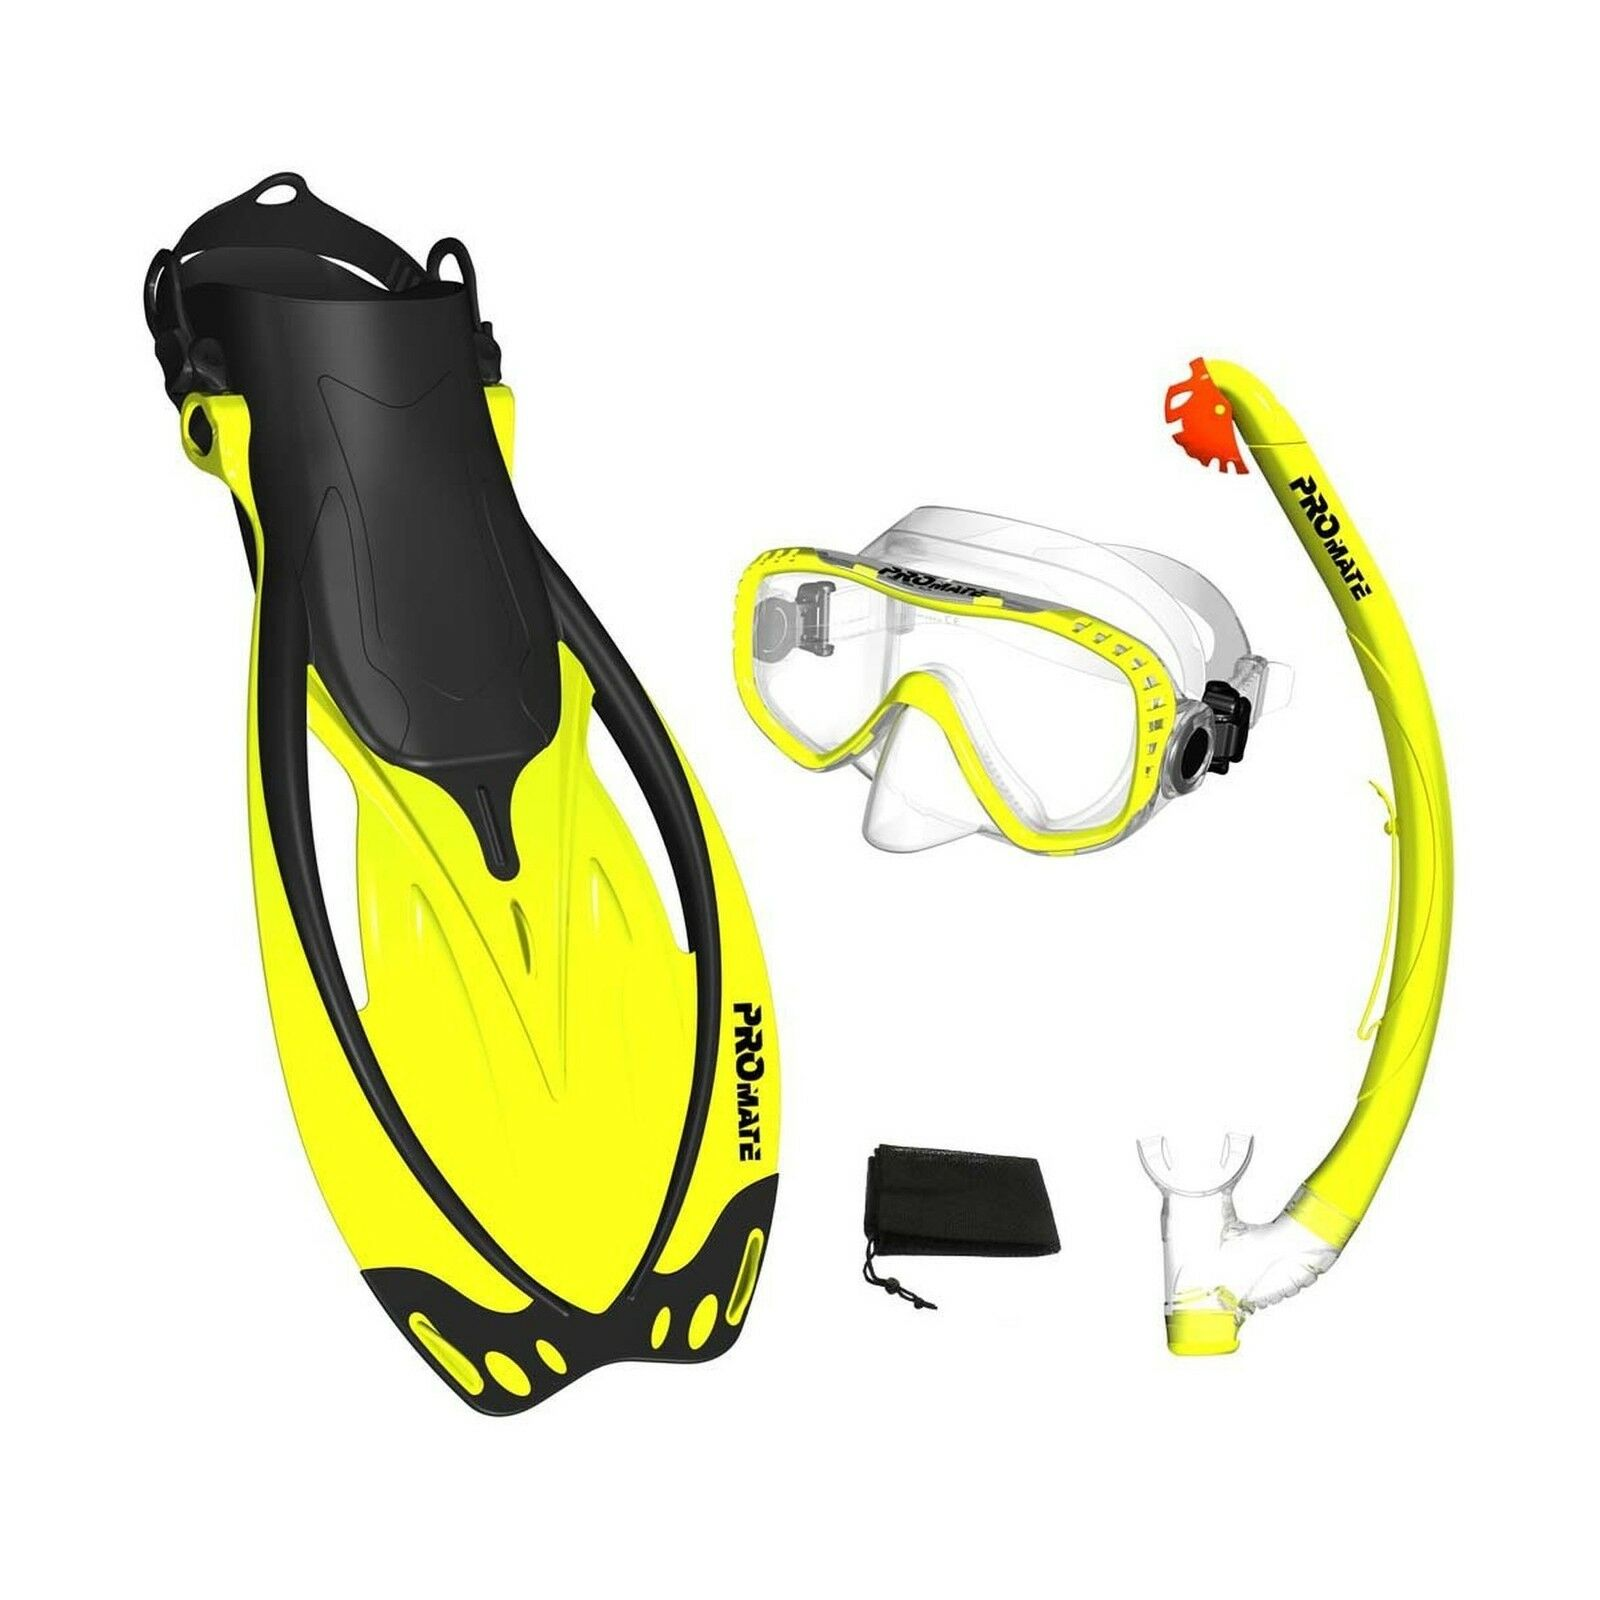 PROMATE Snorkeling Mask Fins DRY Snorkel Set Gear Bag Yellow SM... Free Shipping